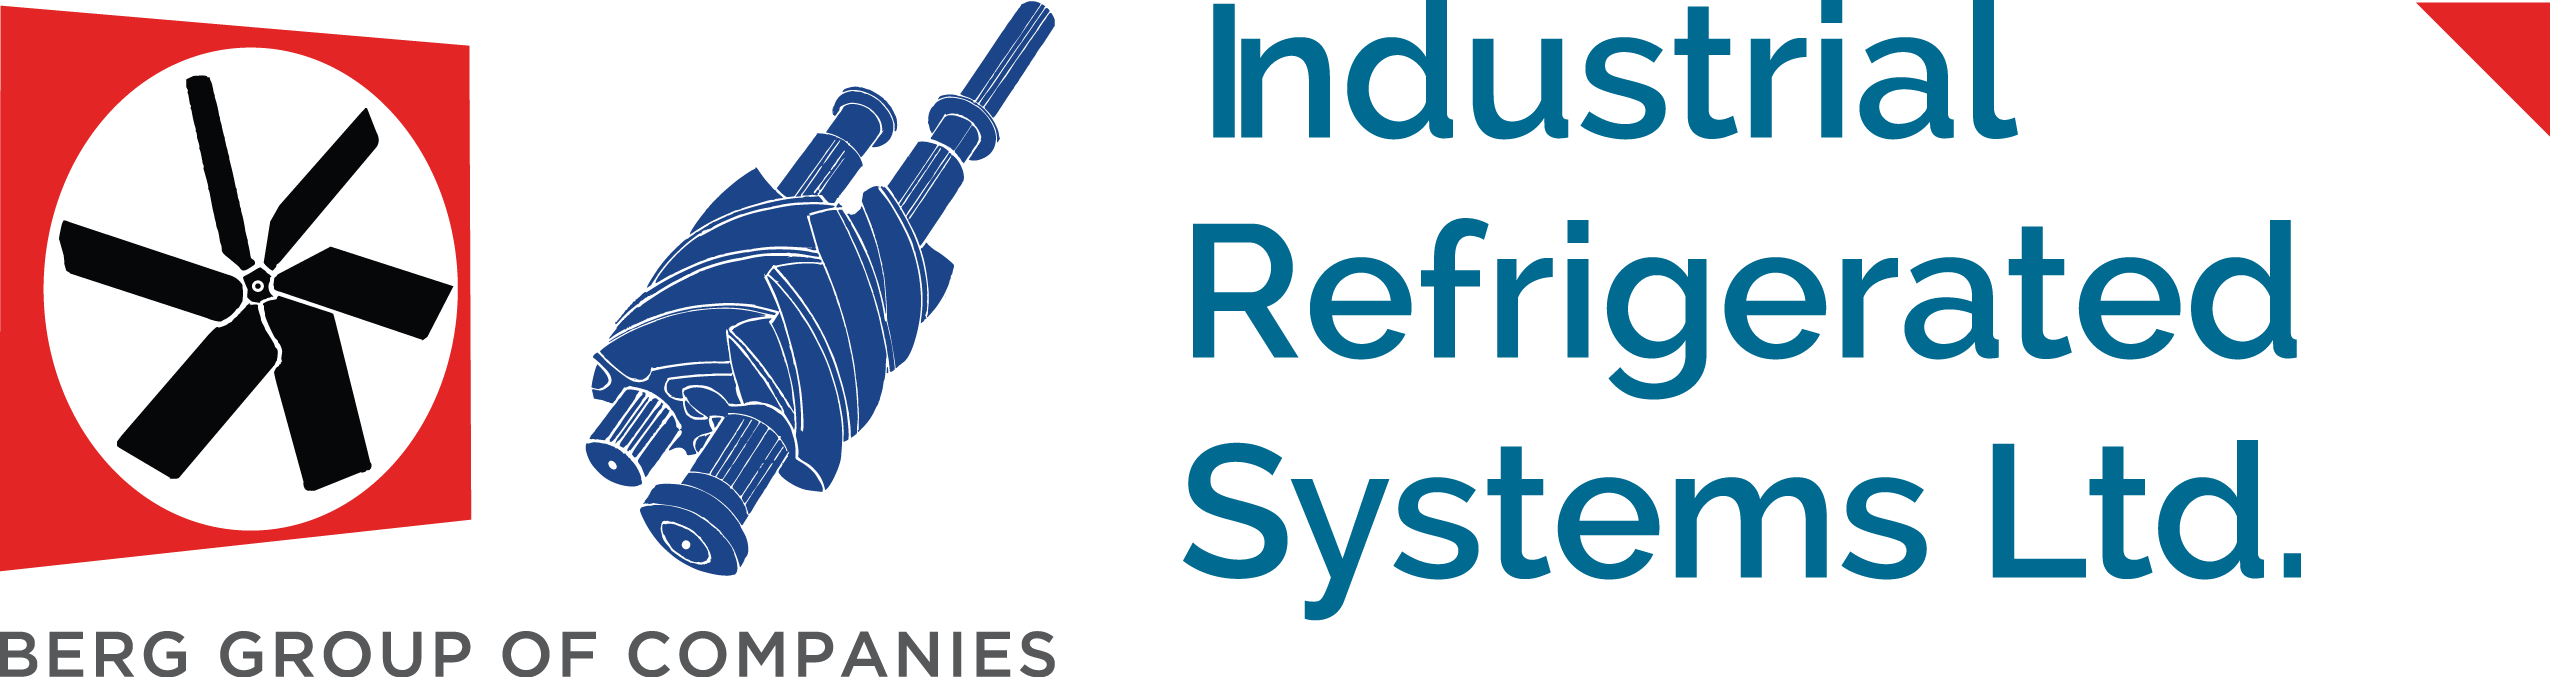 Industrial Refrigerated Systems logo